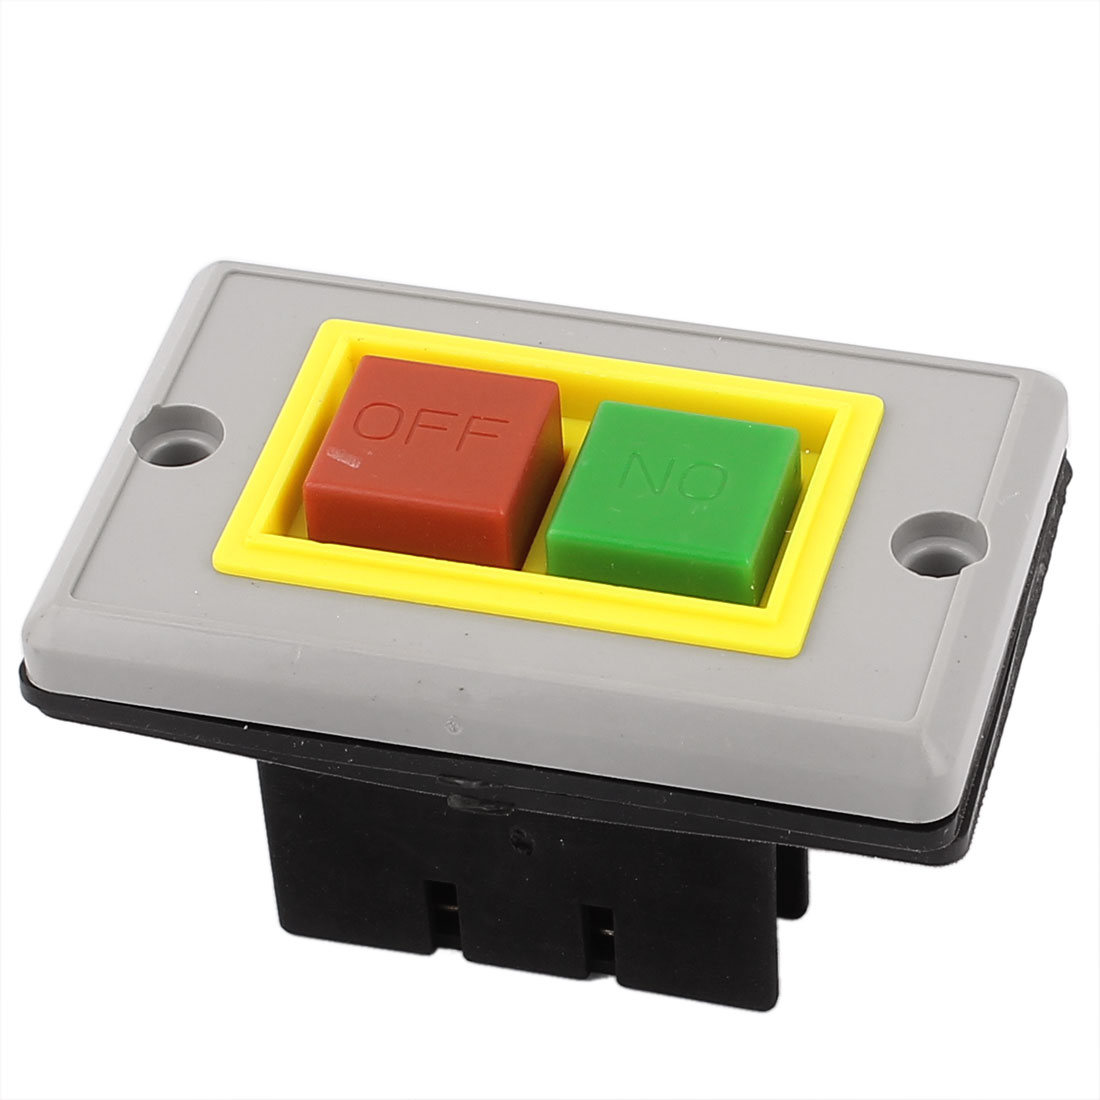 AC 380V 5A Panel Mounted On/Off Start Stop Push Button Switch